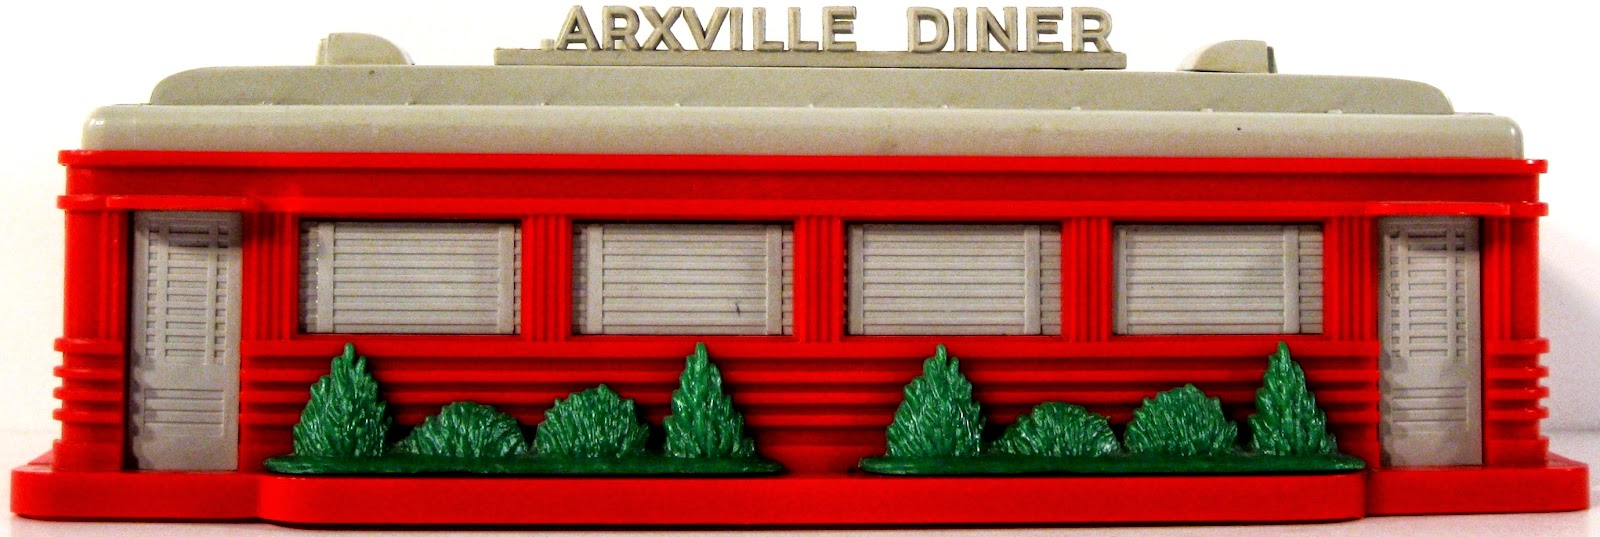 Toys And Stuff Marxville Diner Red With Gray Roof